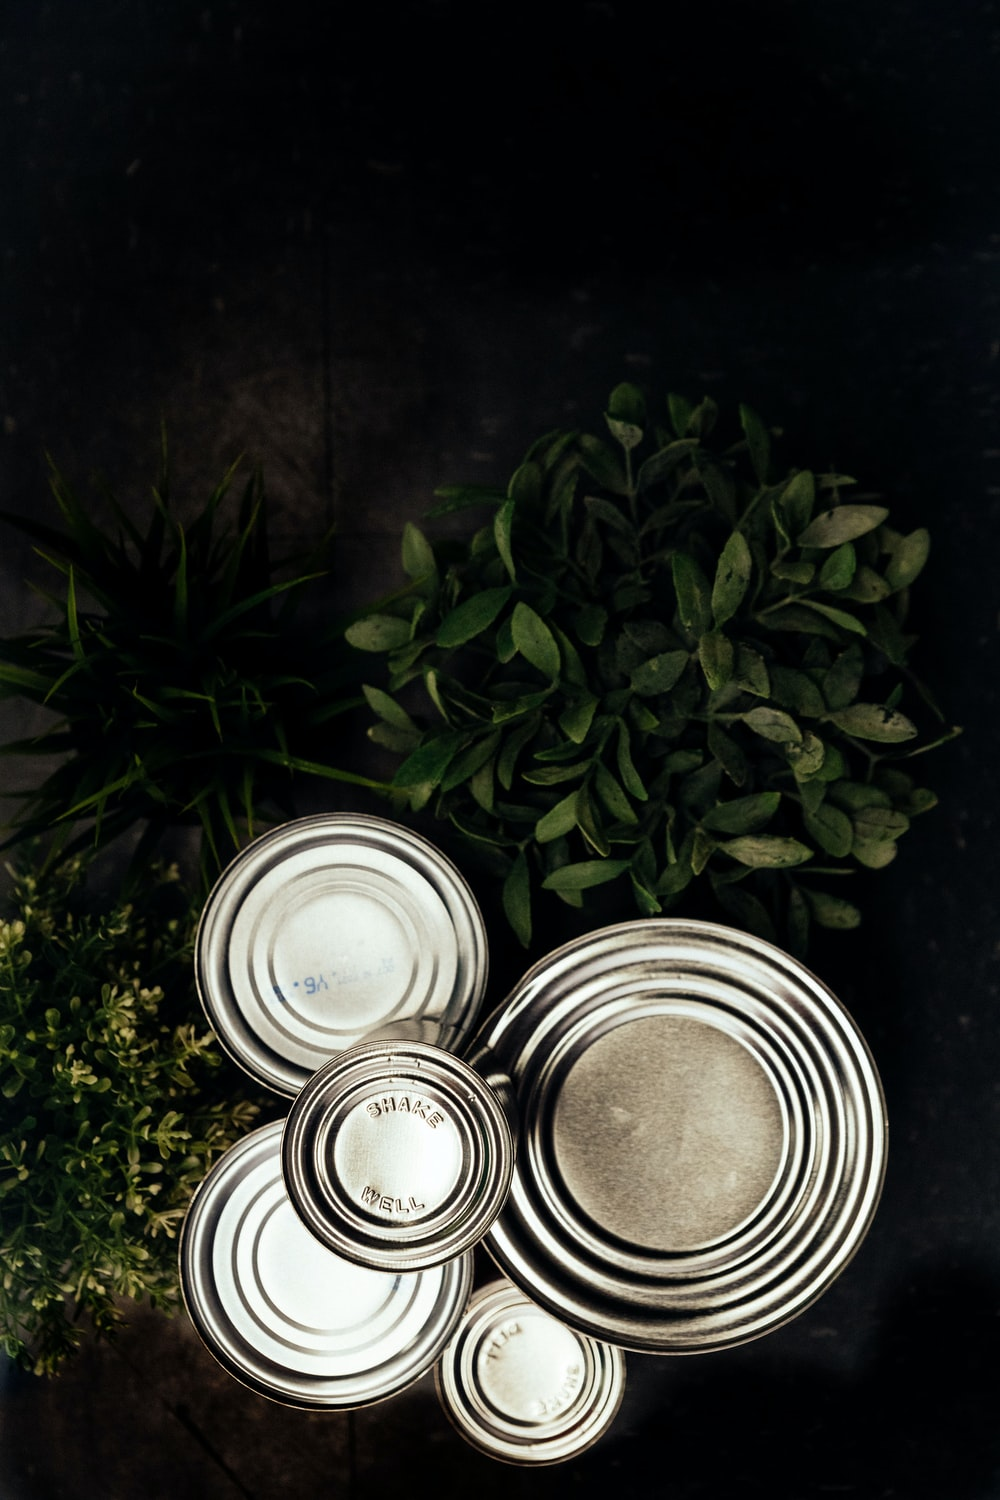 green leaves and silver round cans